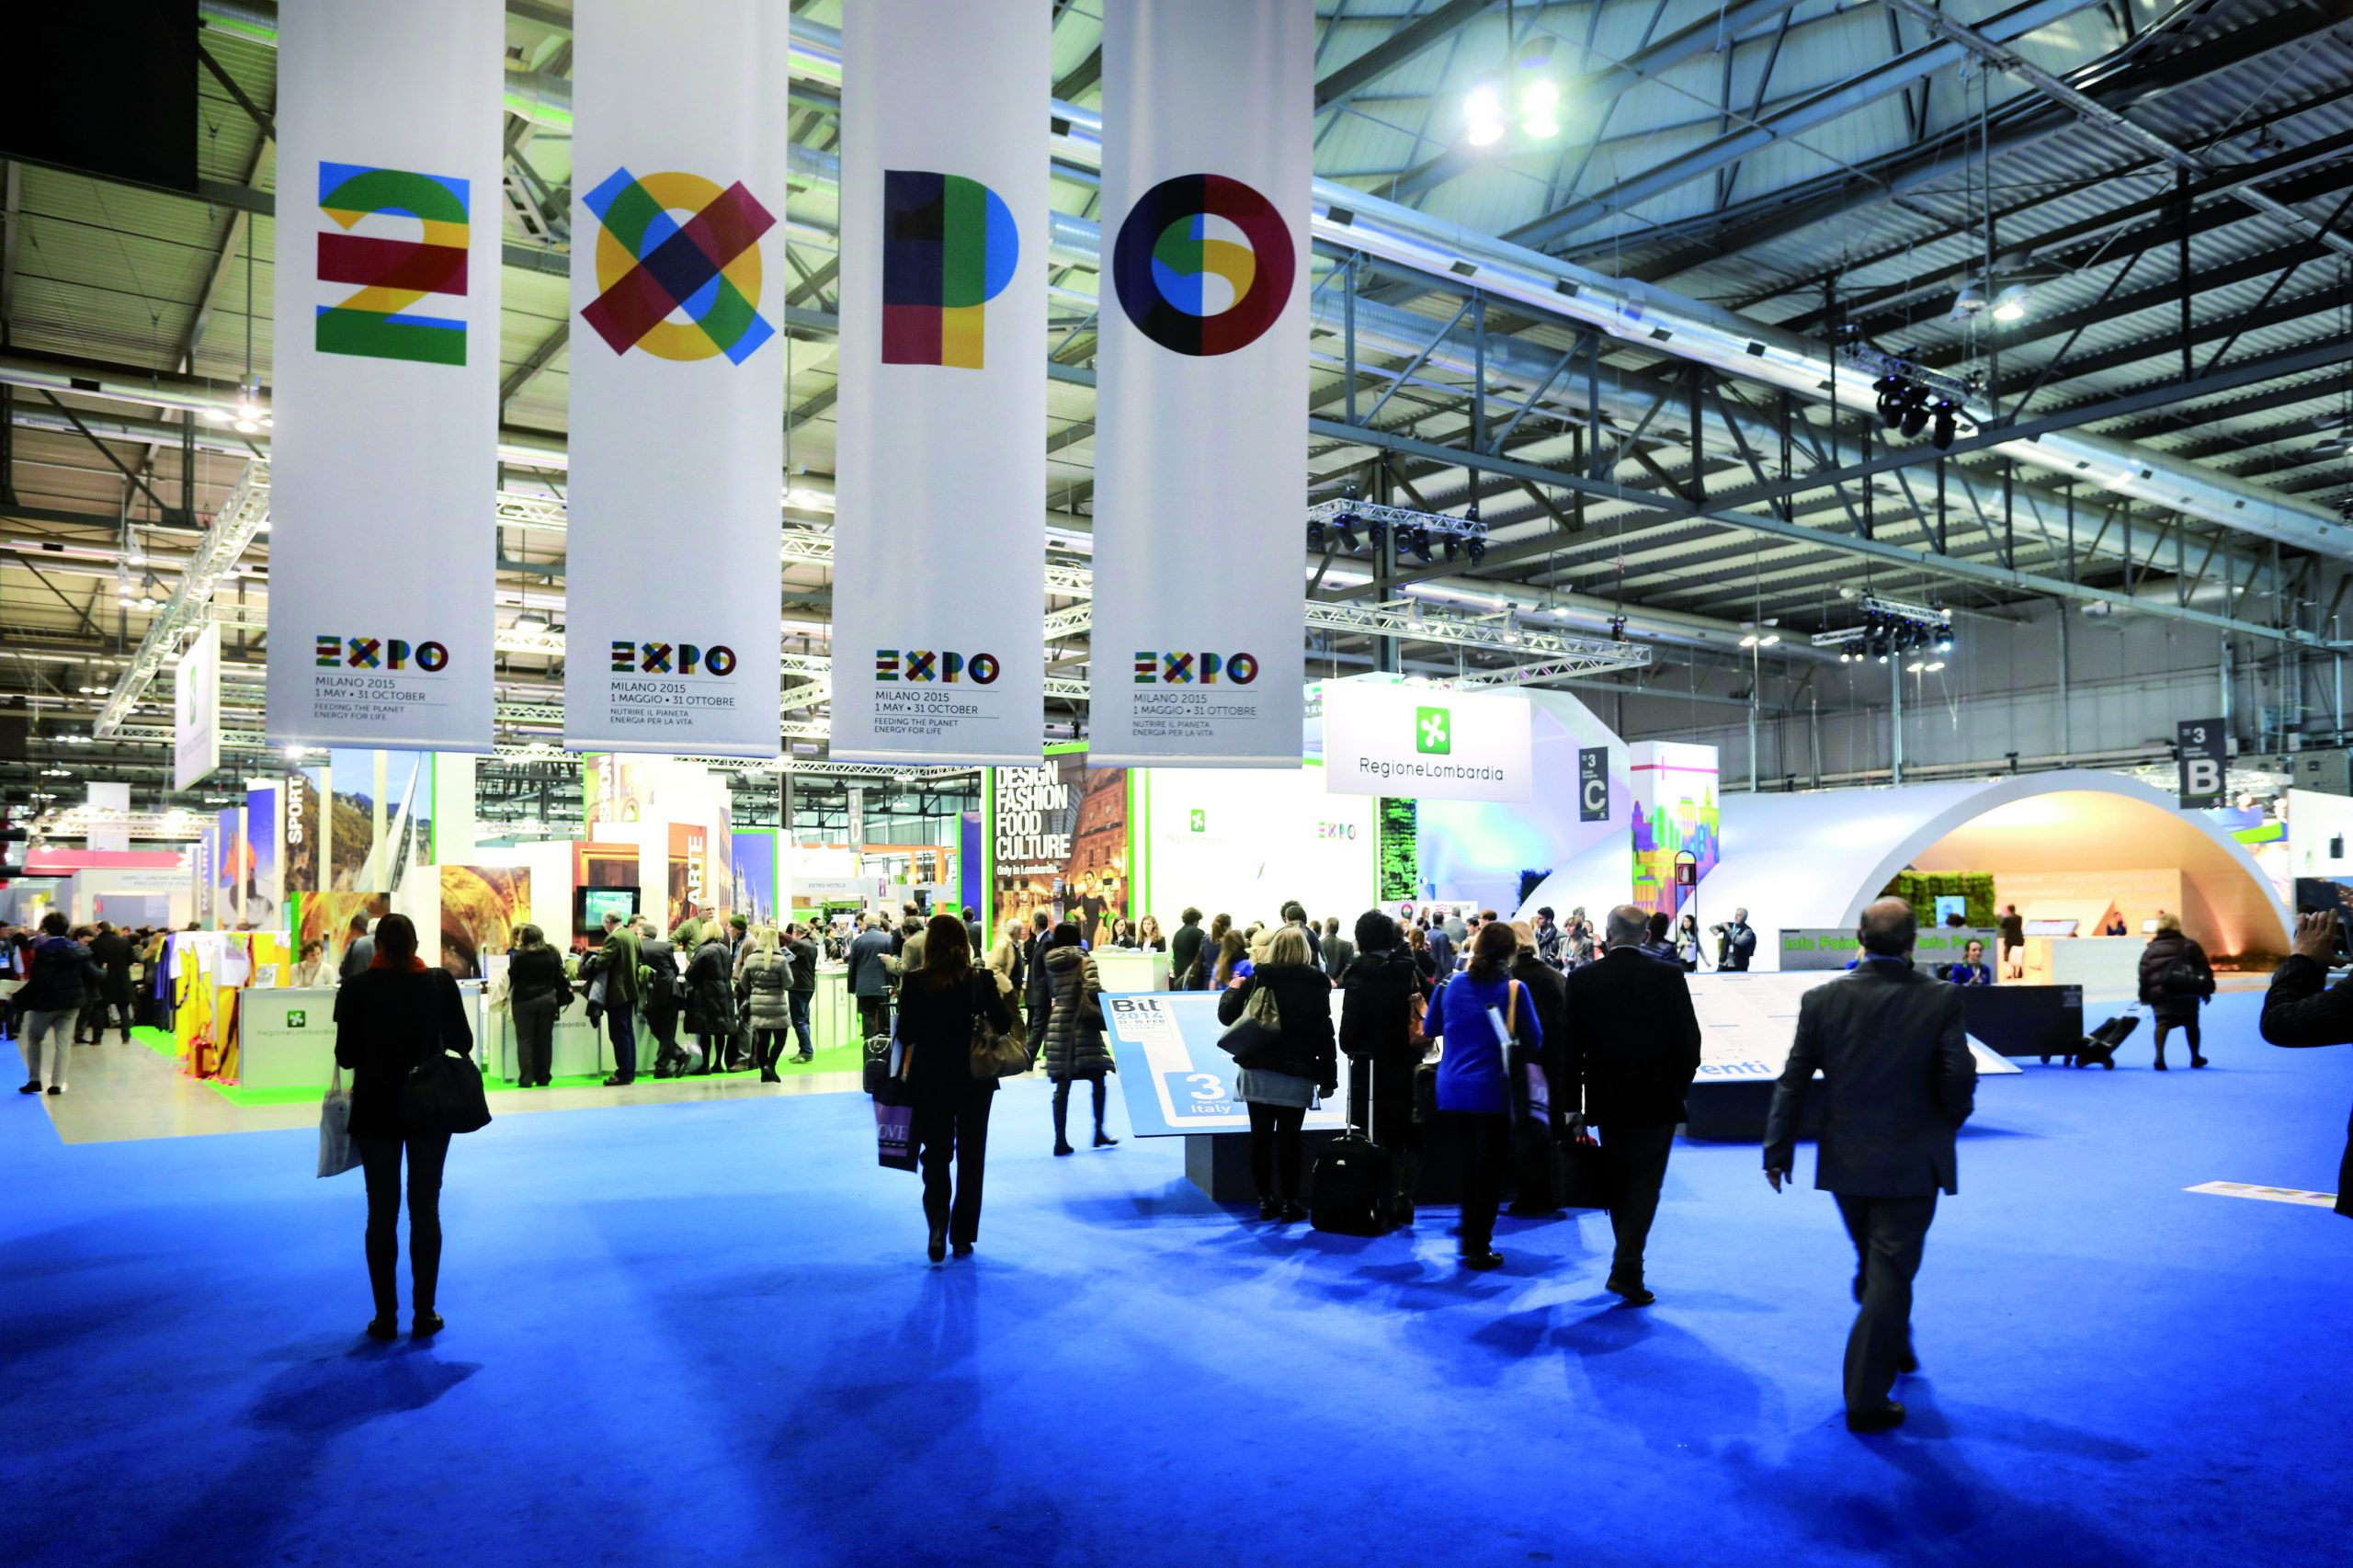 Logo dell'Expo 2015 agli ingressi dei padiglioni di FieraMilano Rho in occasione della Bit 2014  Logo Expo 2015 at the entrances of FieraMilano Rho at the Bit 2014